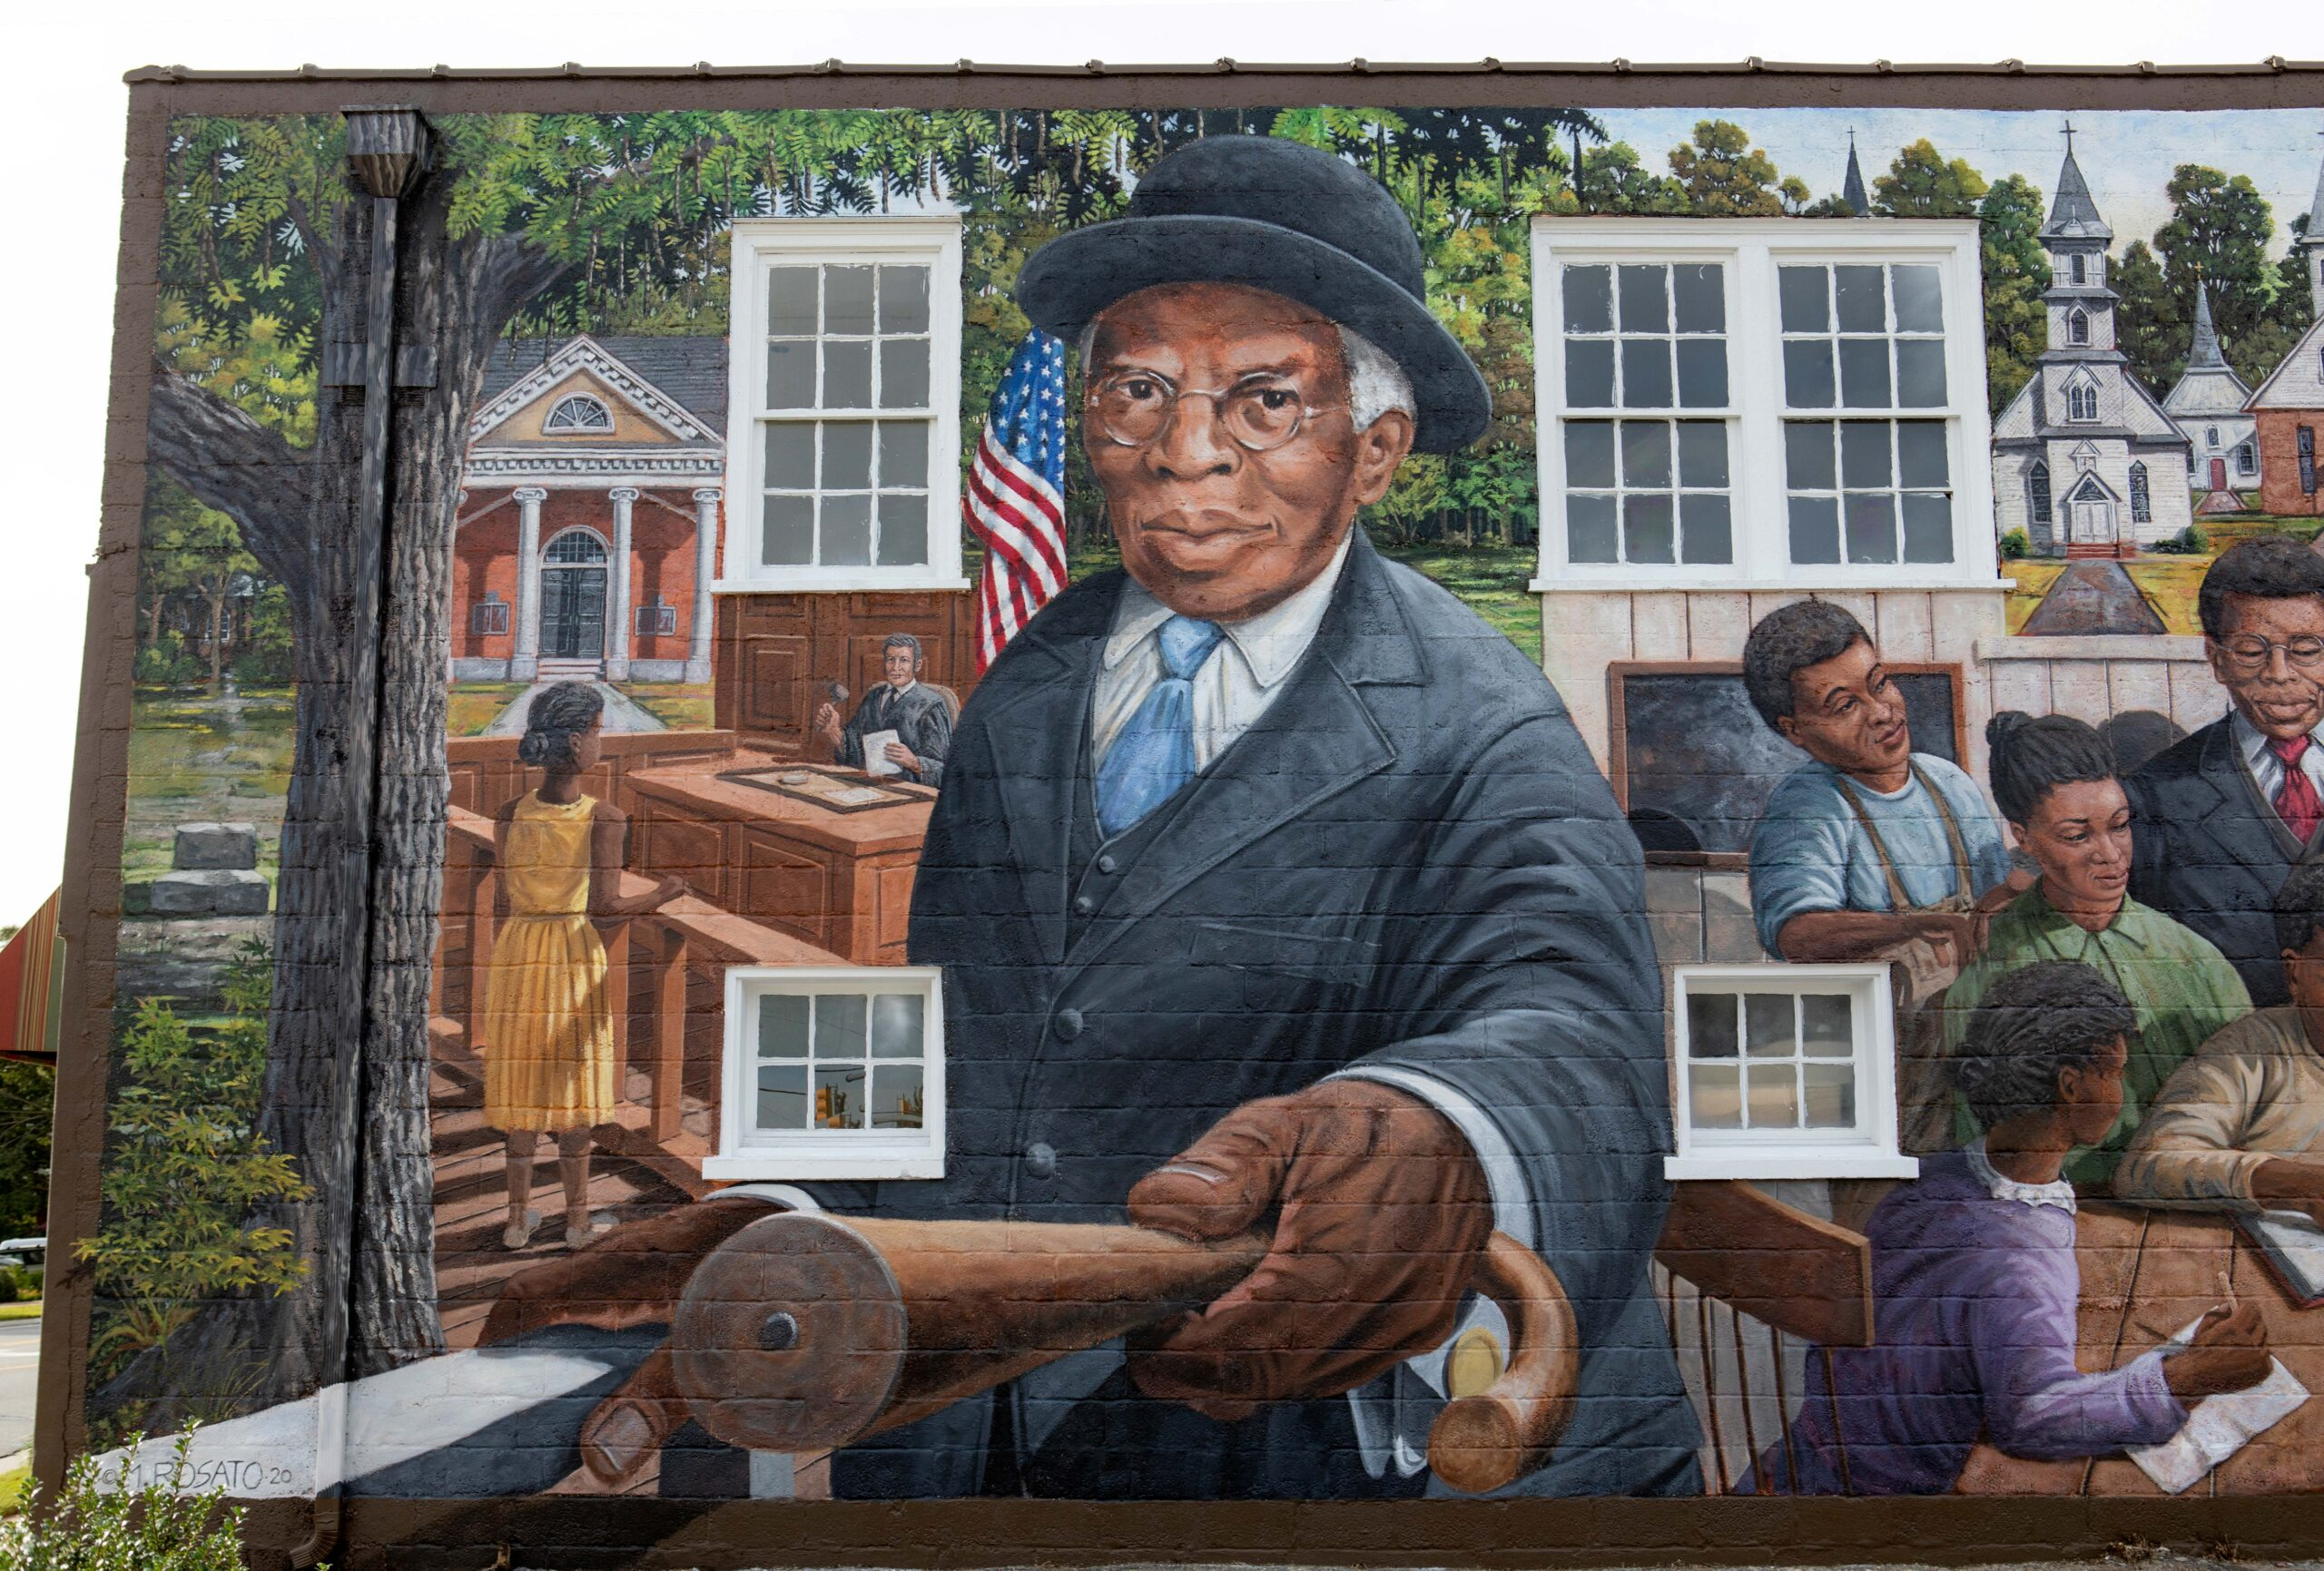 Detail of TC Walker mural on building in downtown Gloucester